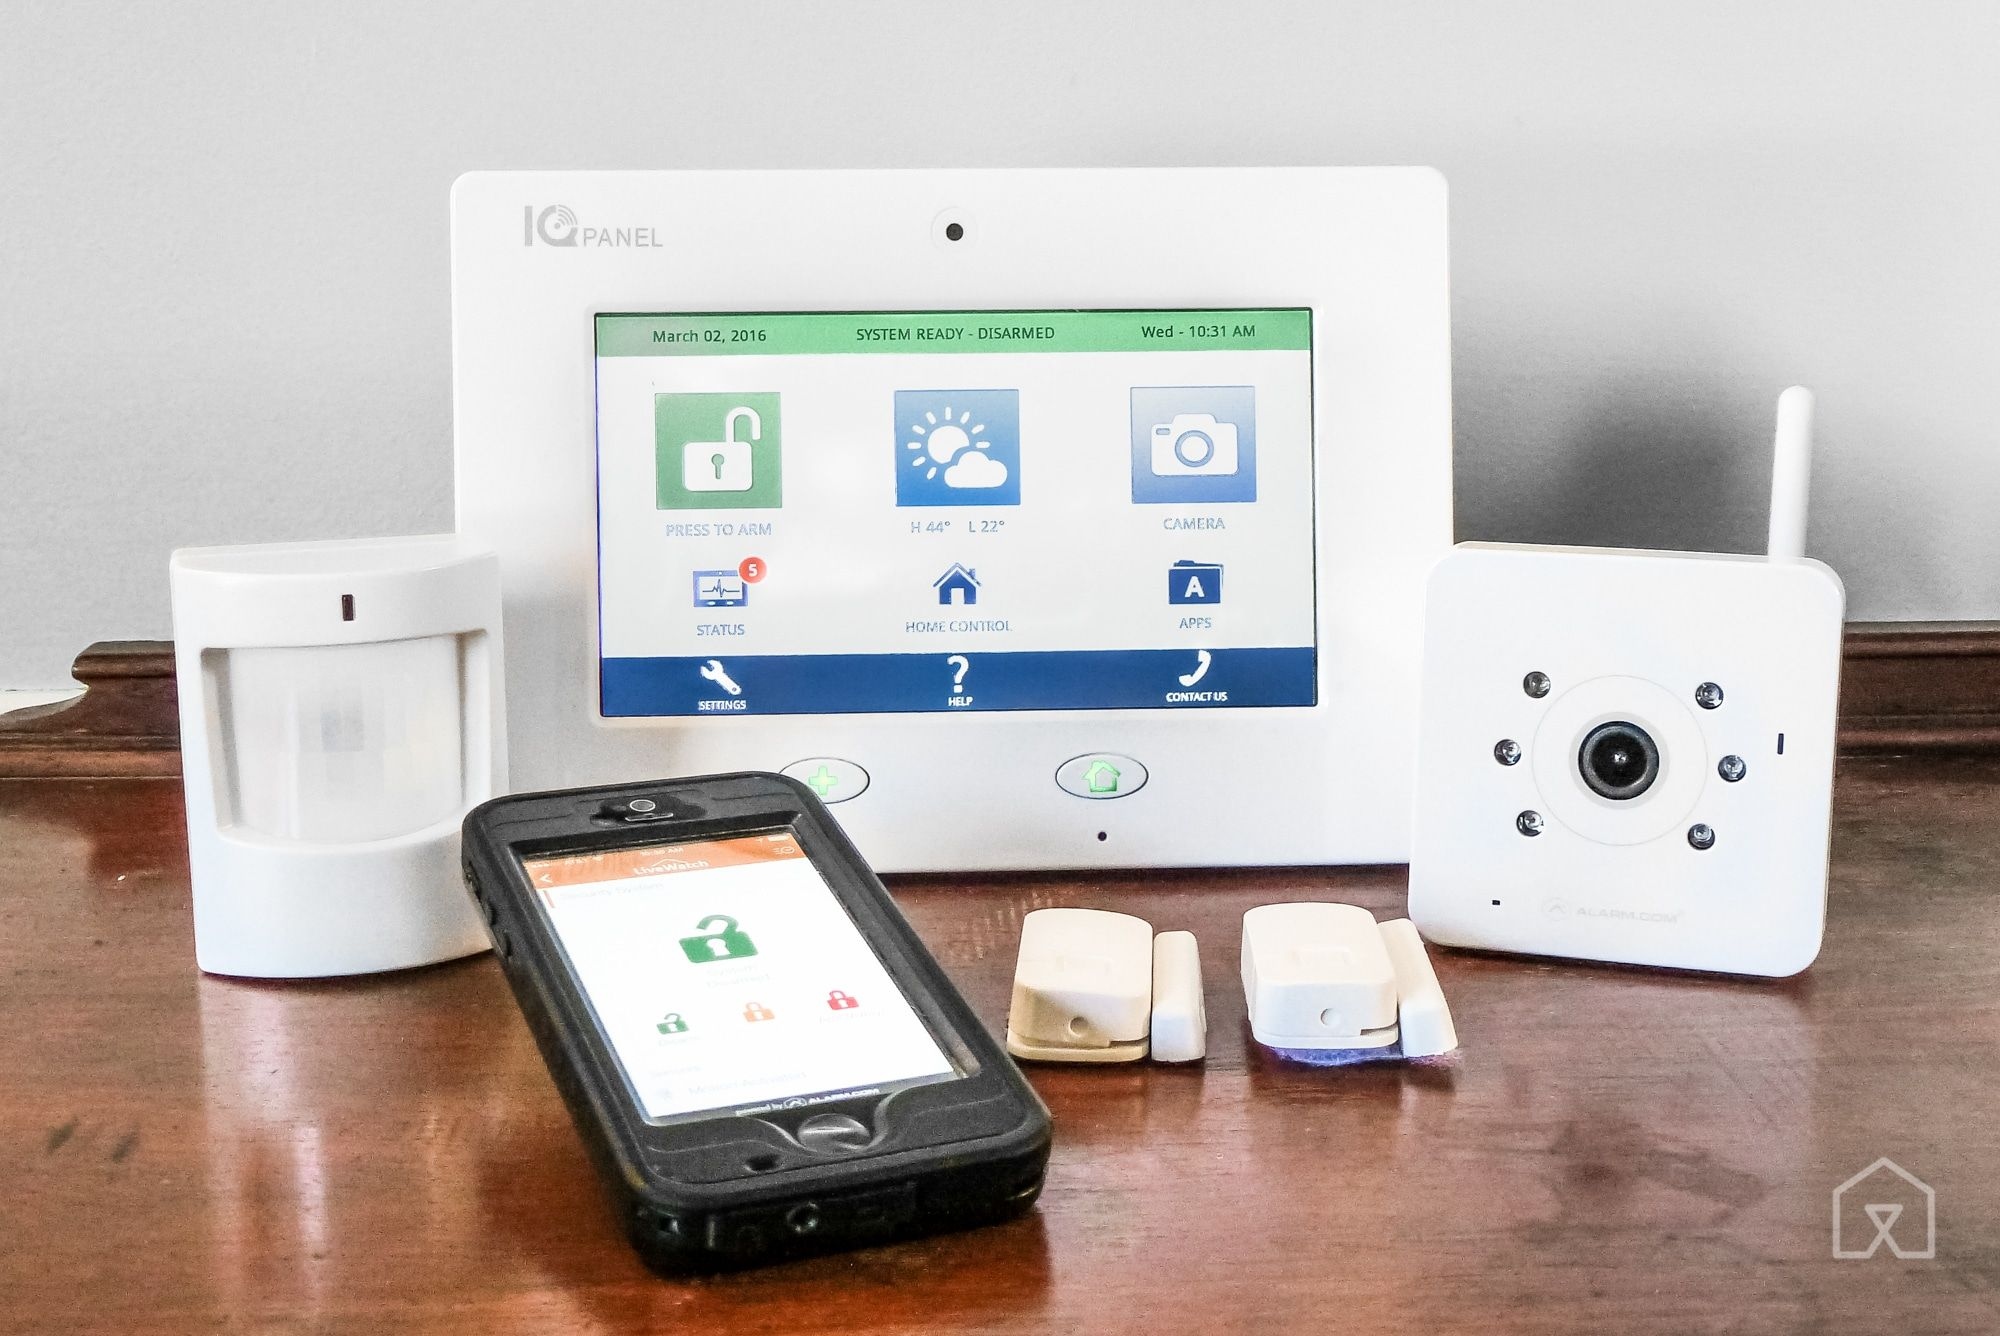 Top 10 Home Security Systems In 2020 In 2021 Best Home Security System Wireless Home Security Systems Home Security Tips